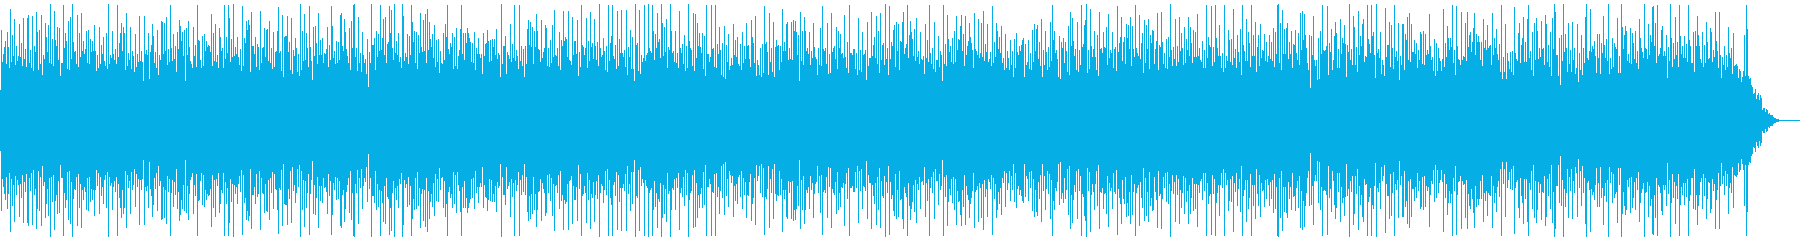 Hilarious celtic dance's reproduced waveform